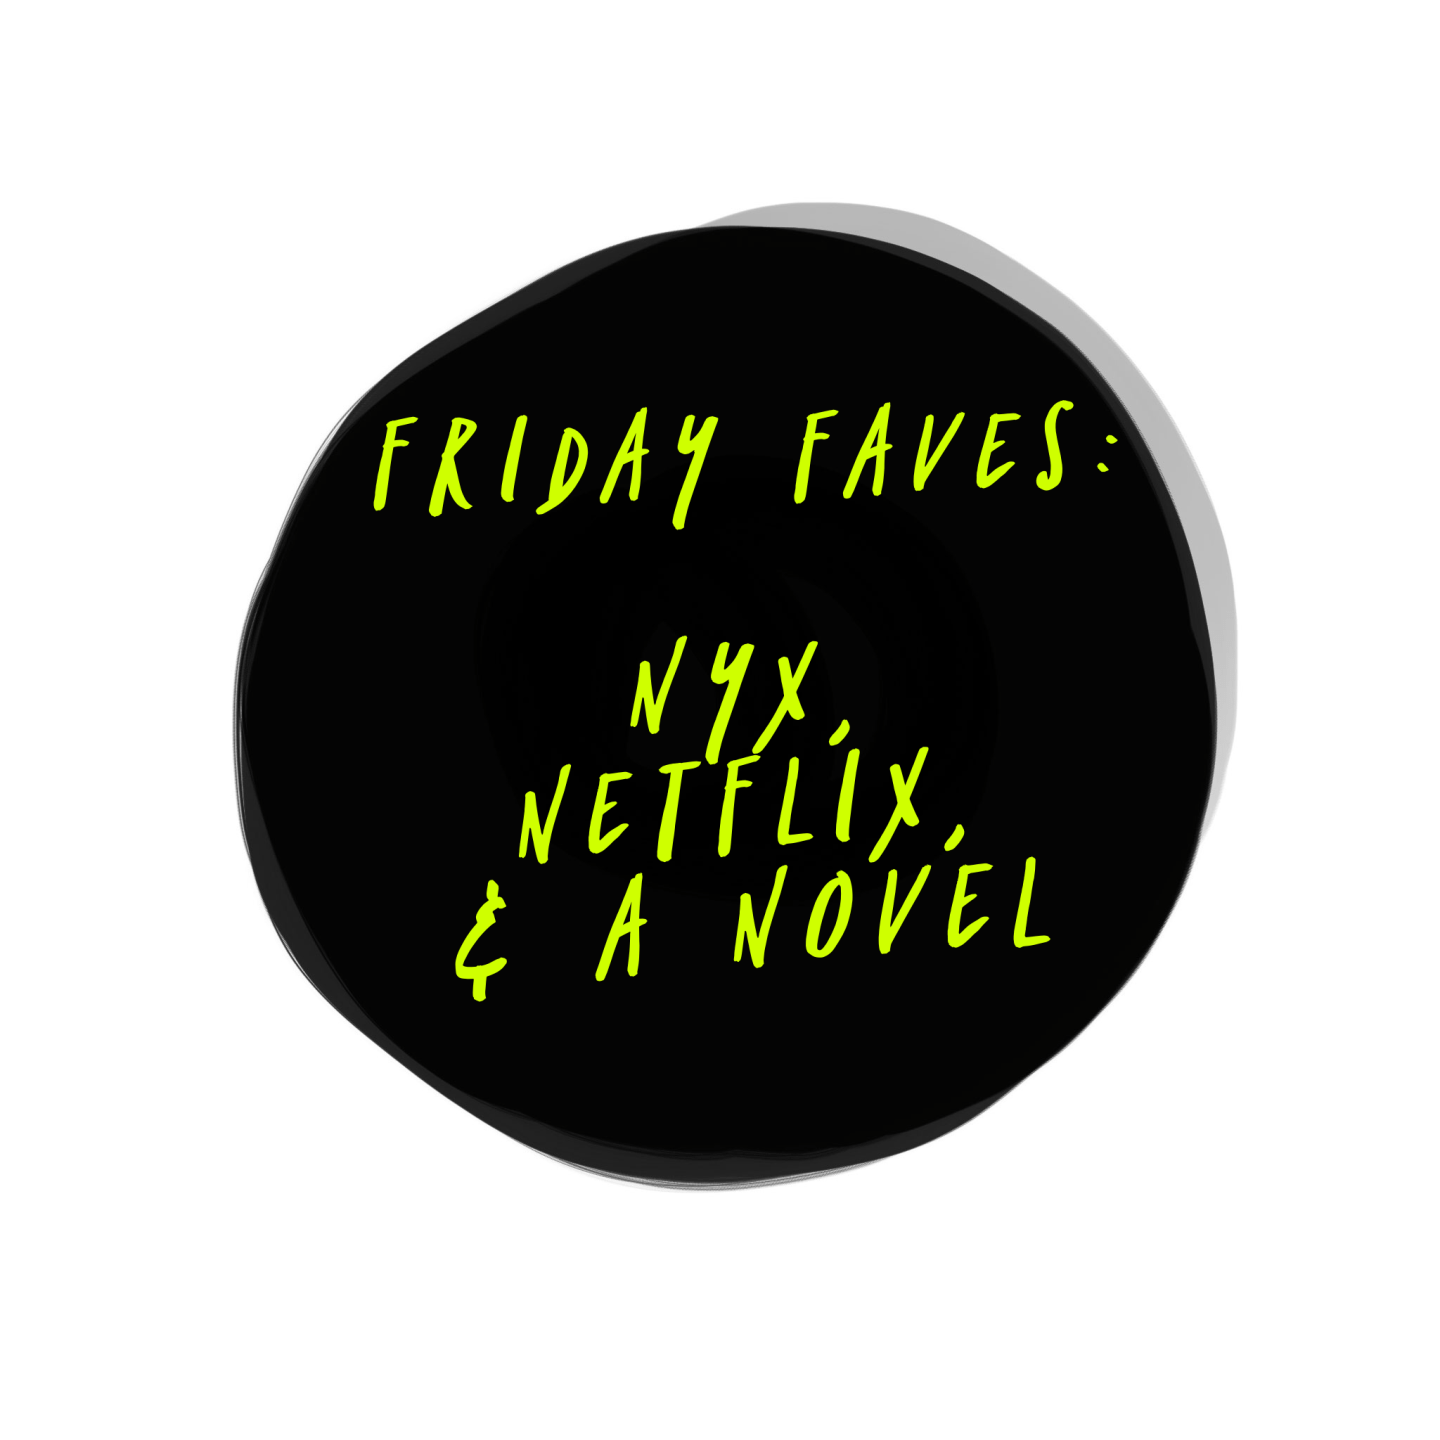 Friday Faves: Recommendations for make up, TV, books and podcasts...